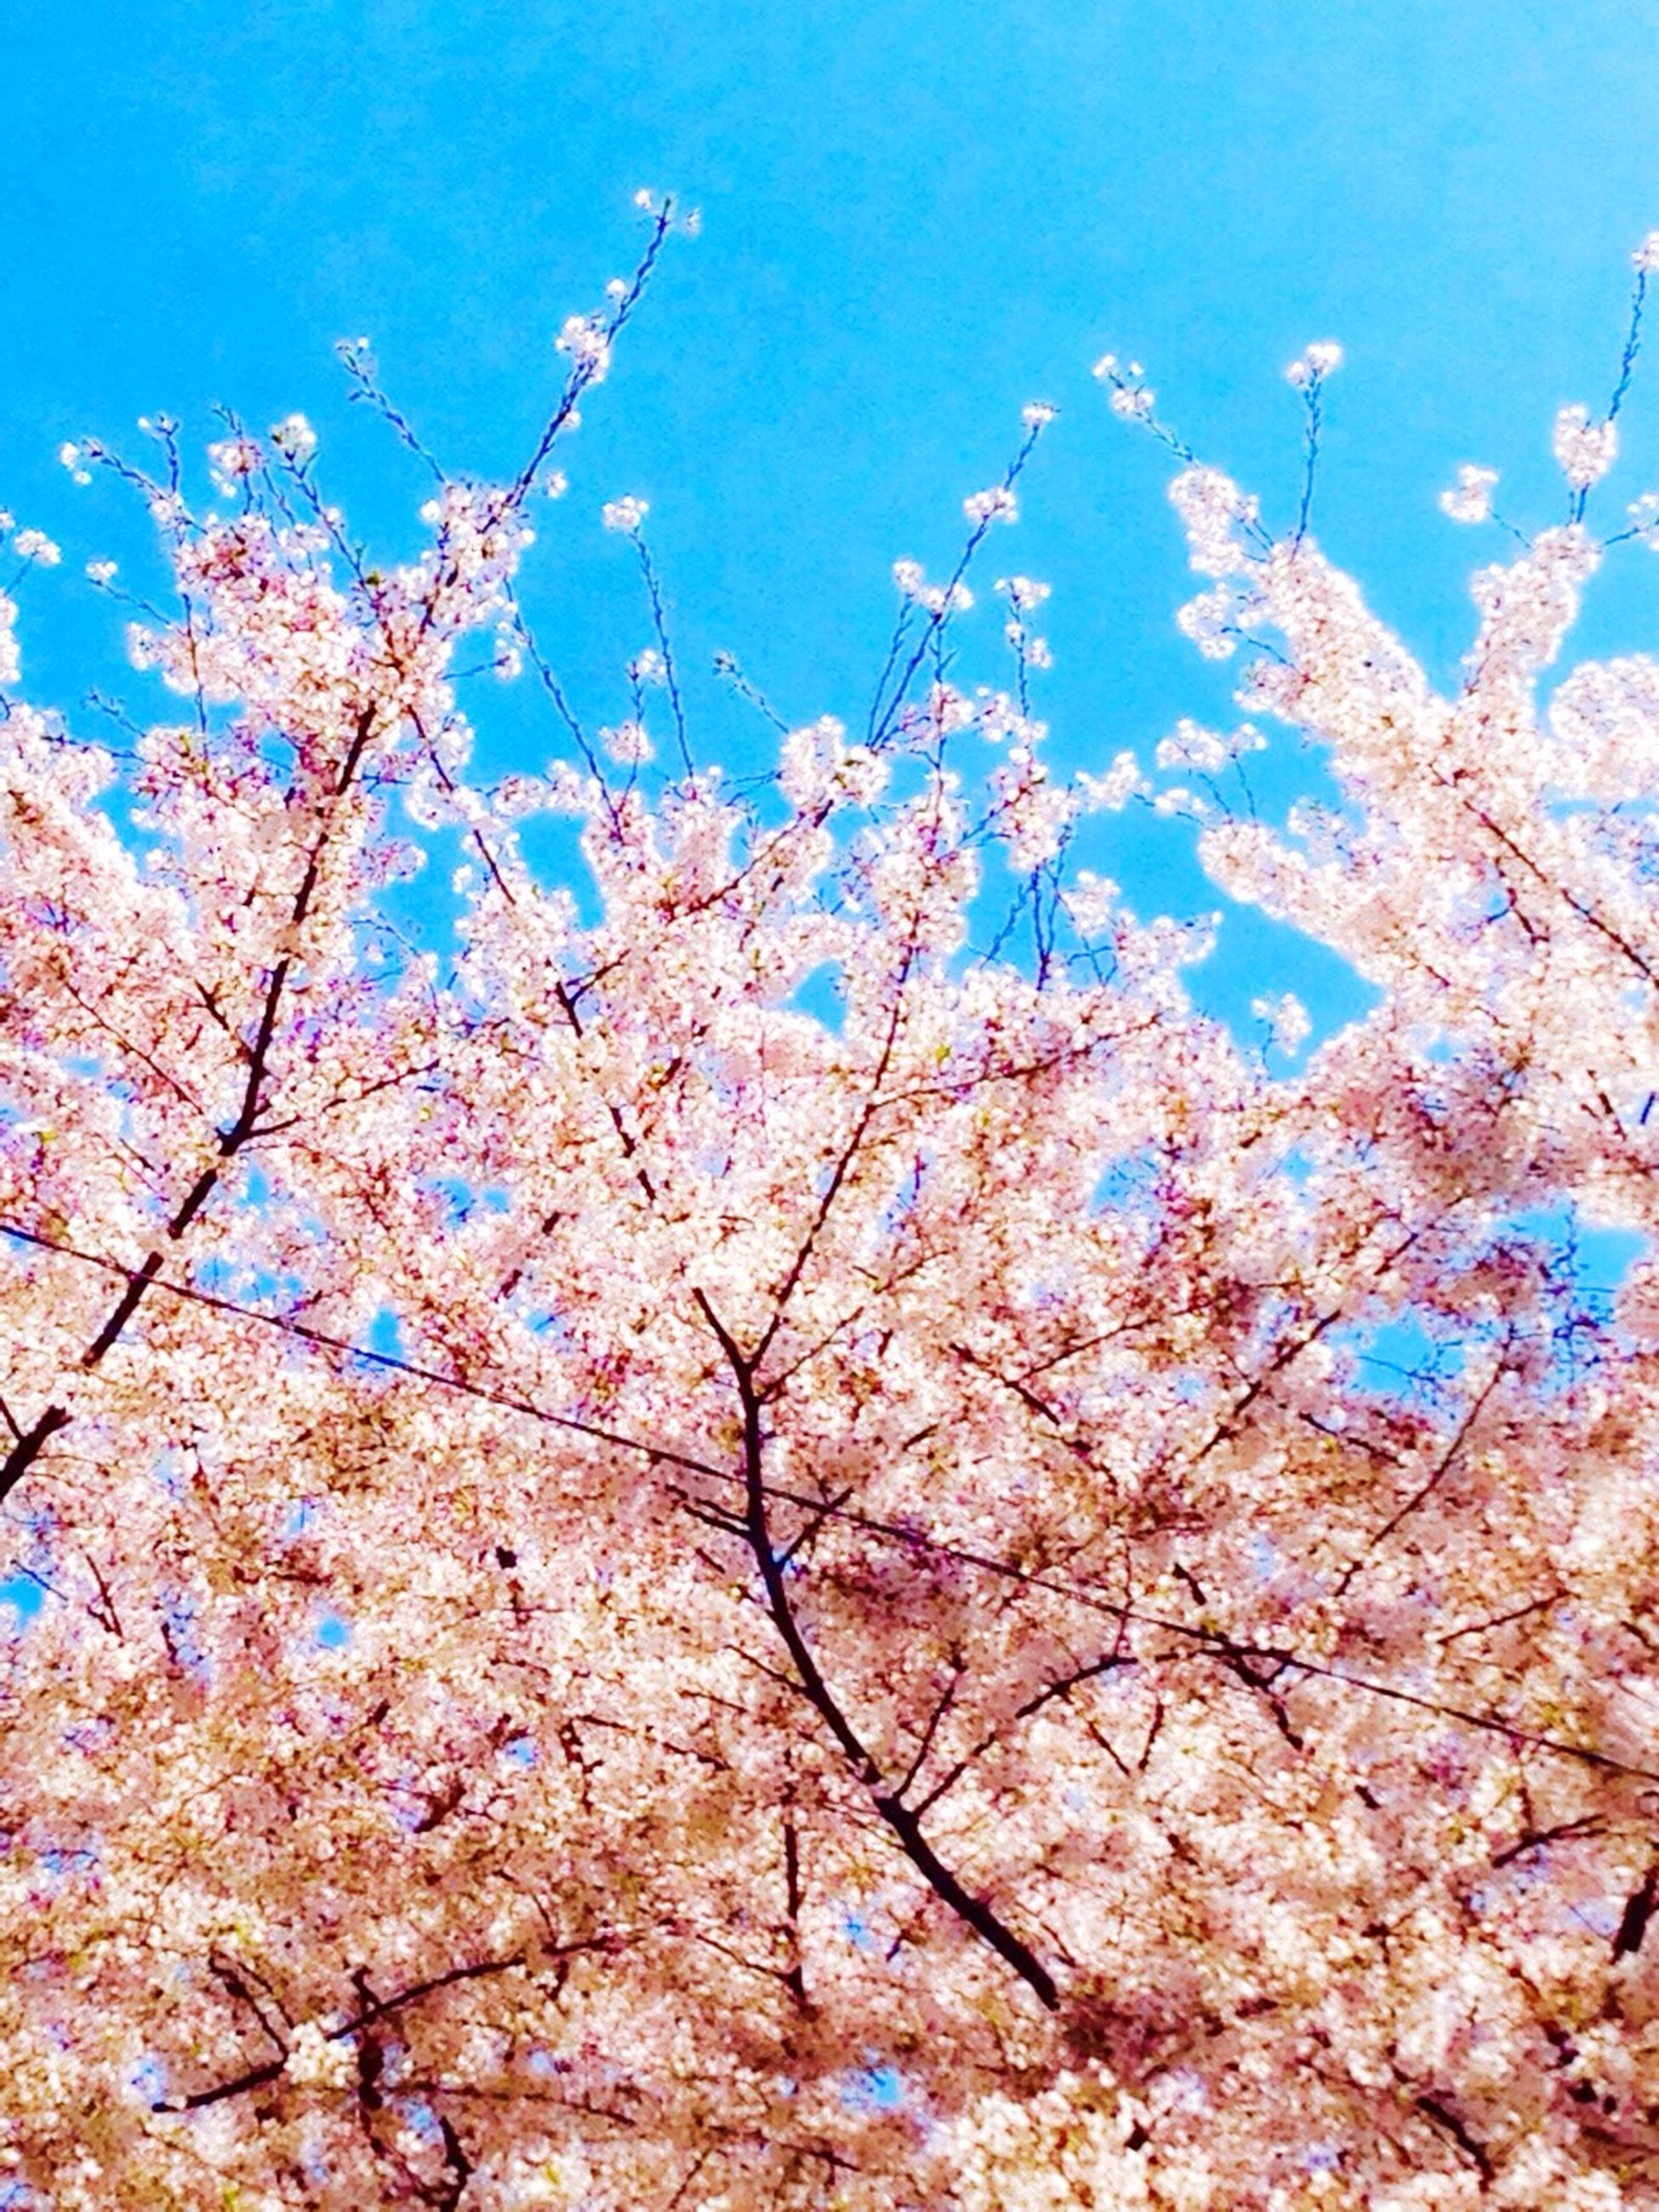 flower, tree, low angle view, branch, blue, growth, nature, beauty in nature, clear sky, fragility, freshness, cherry blossom, blossom, blooming, day, sky, cherry tree, outdoors, sunlight, pink color